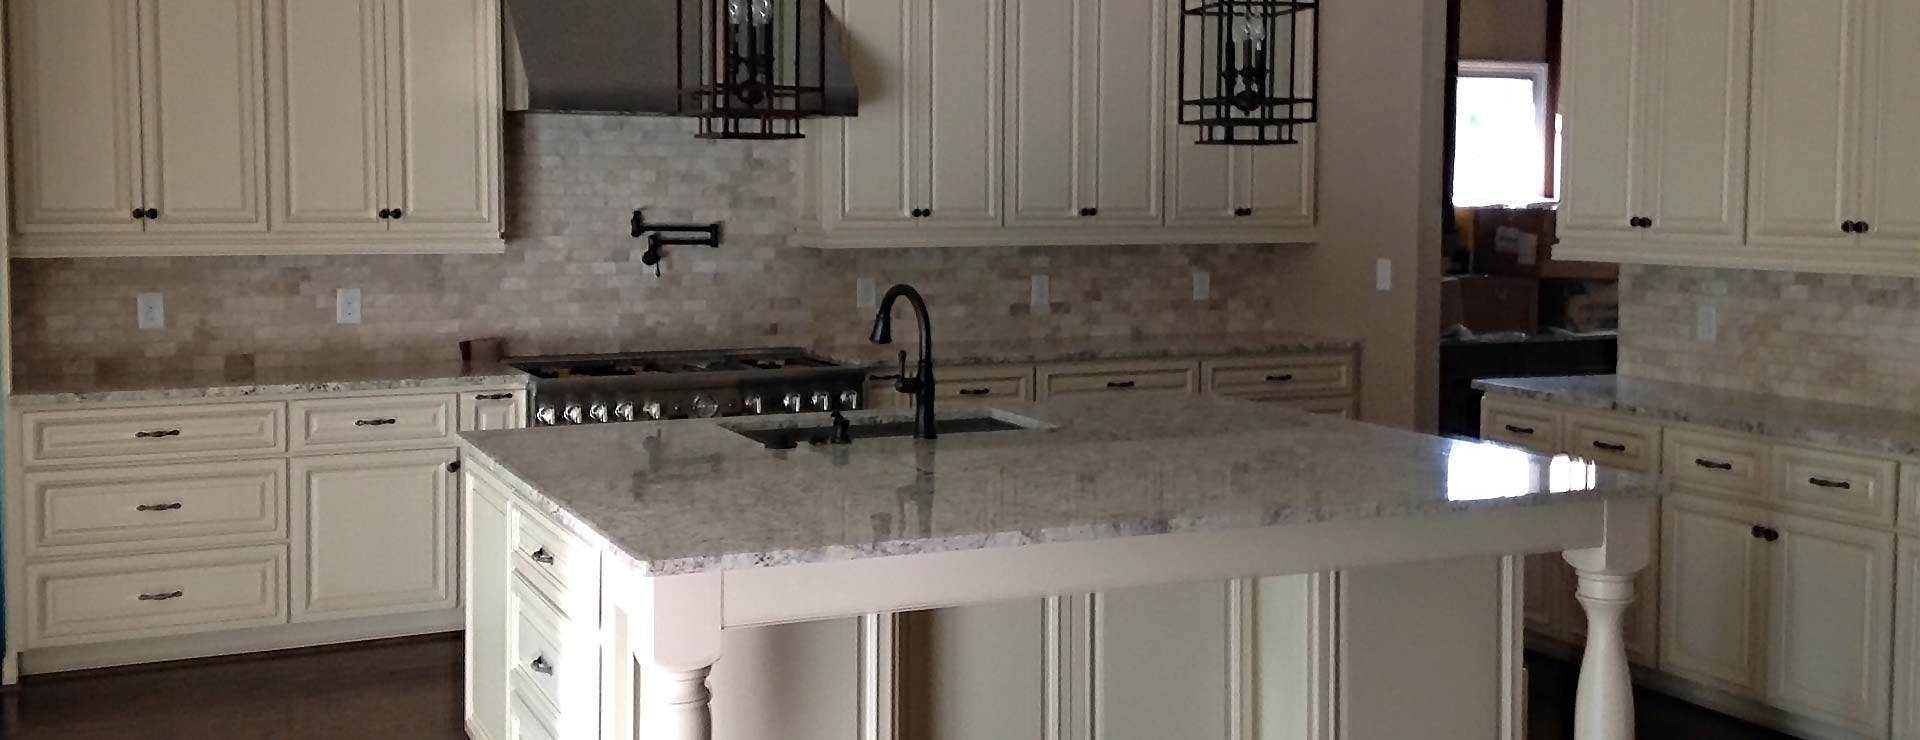 charlotte kitchen cabinets best faucet brand premium remodeling in nc finest real wood